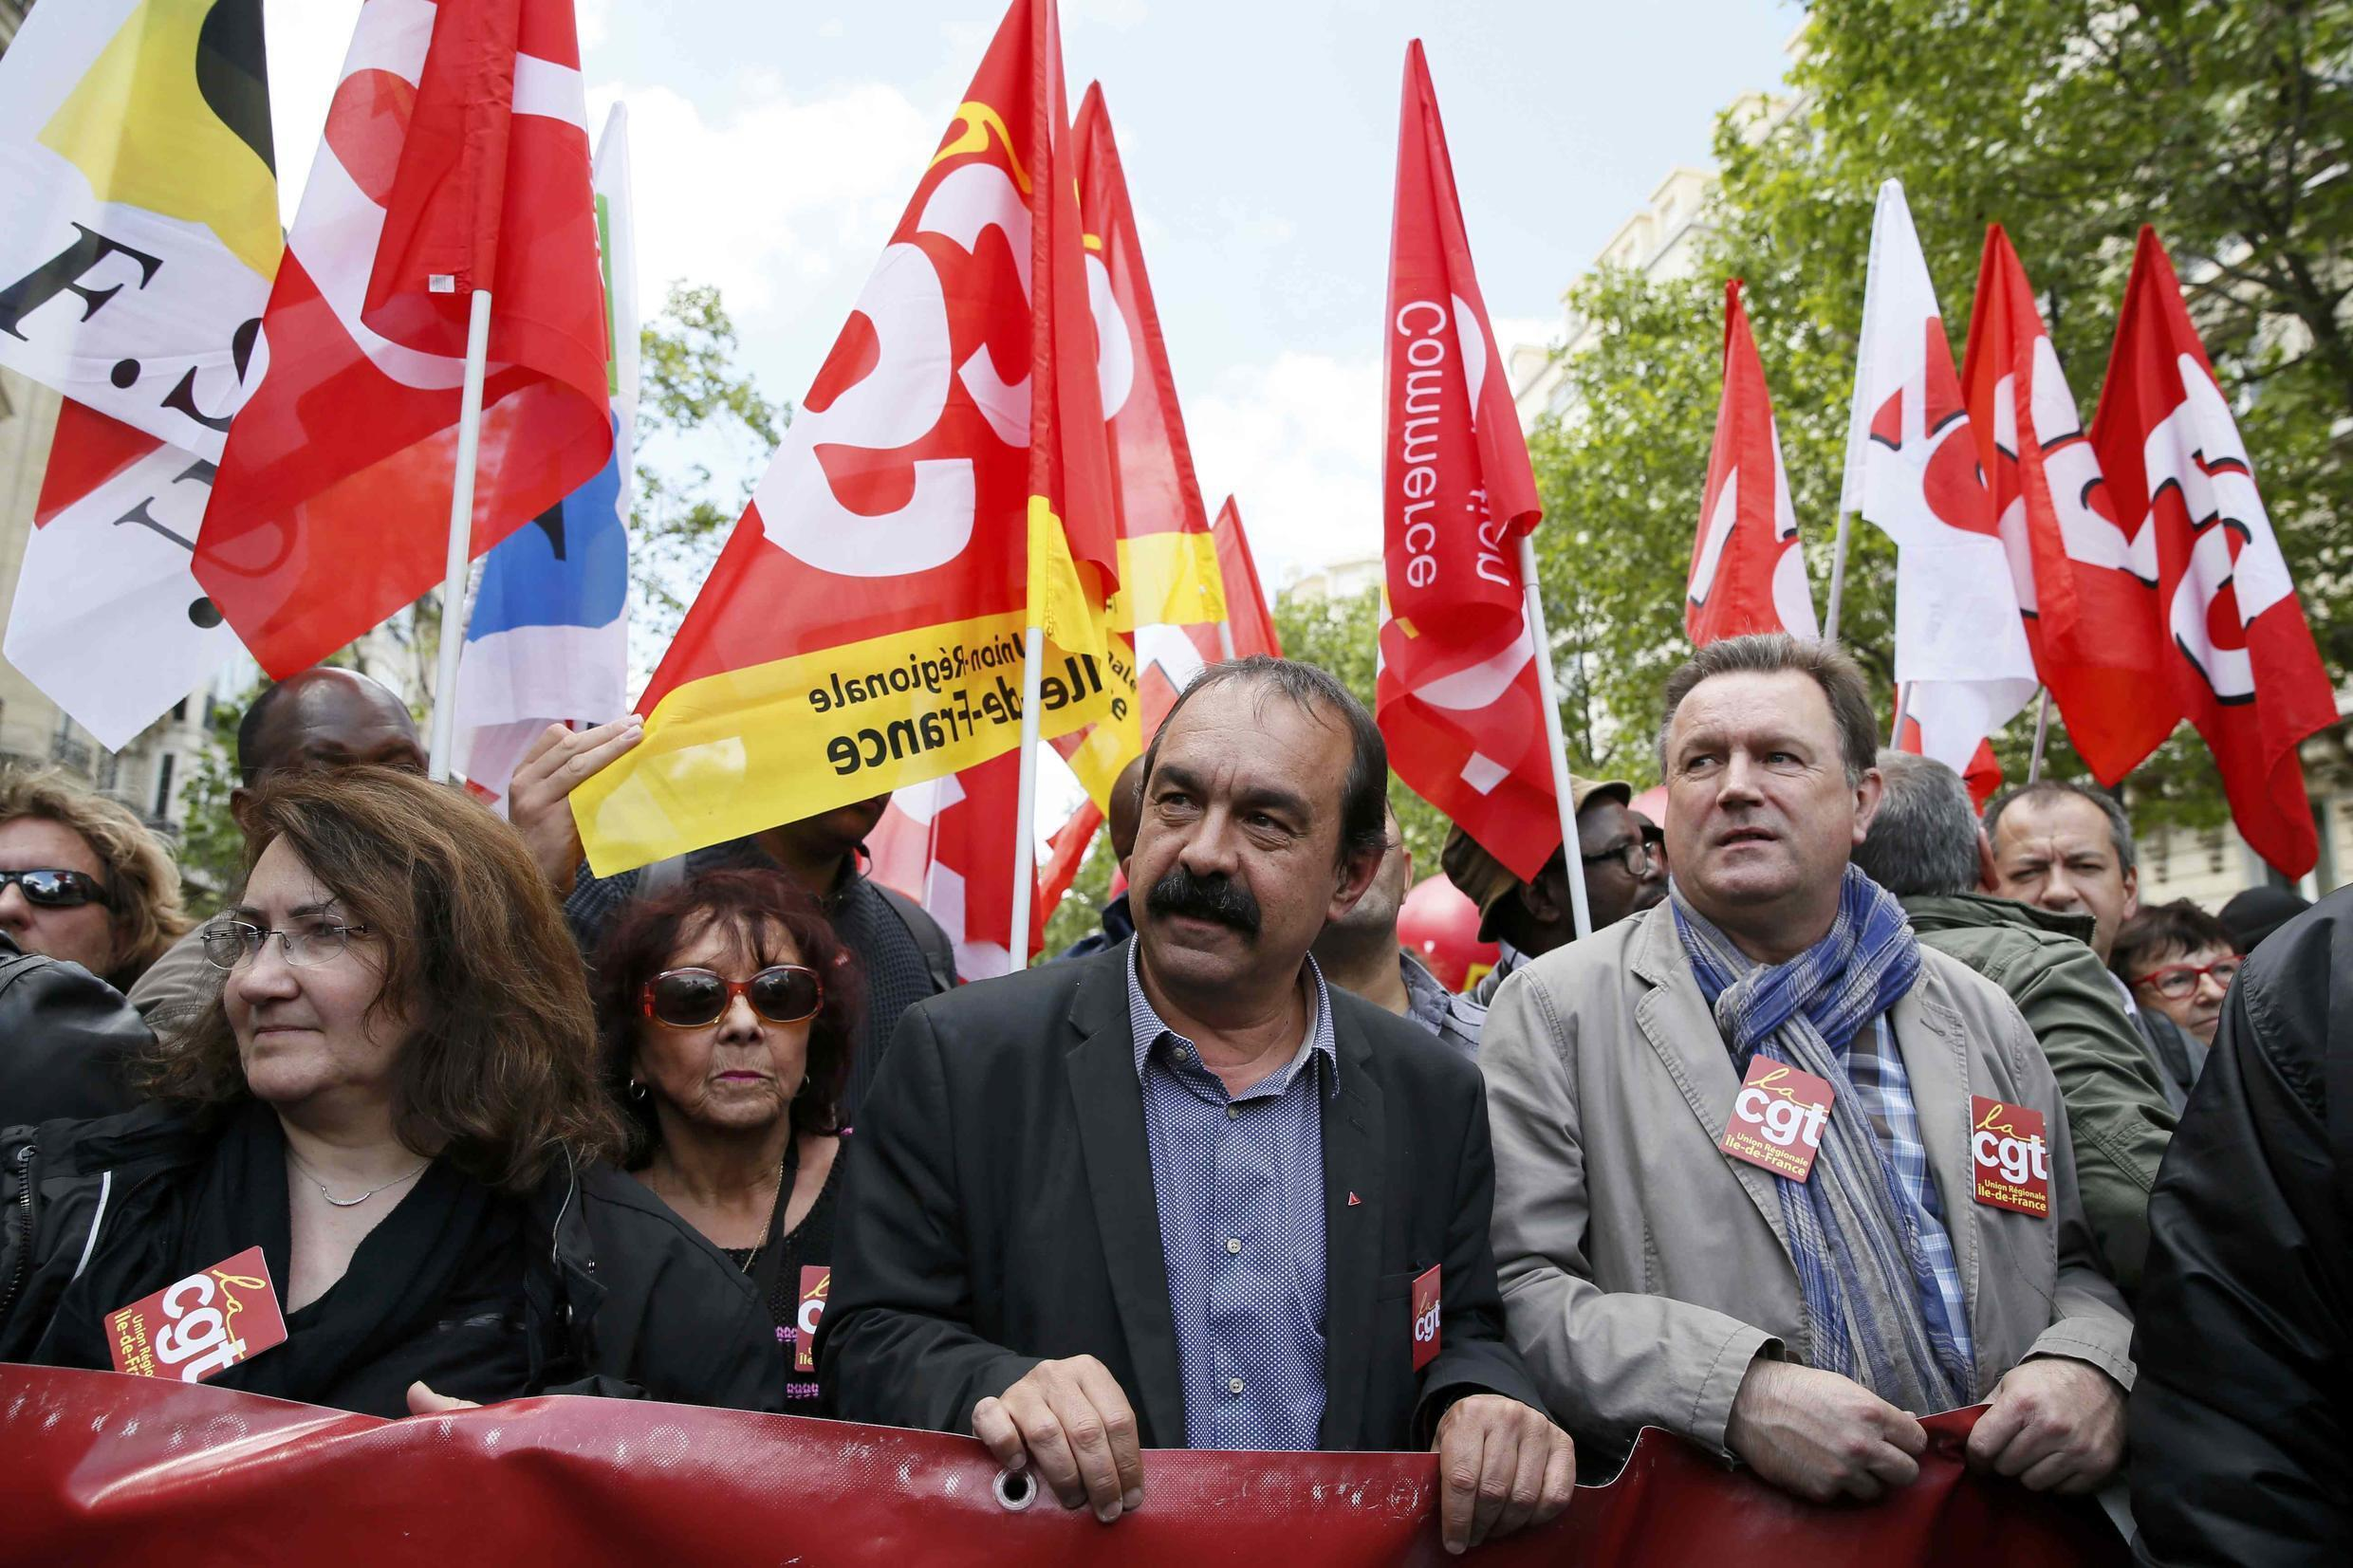 French CGT trade union general secretary Philippe Martinez (C) attends a demonstration against French labour law reforms in Paris, France, May 17, 2016.